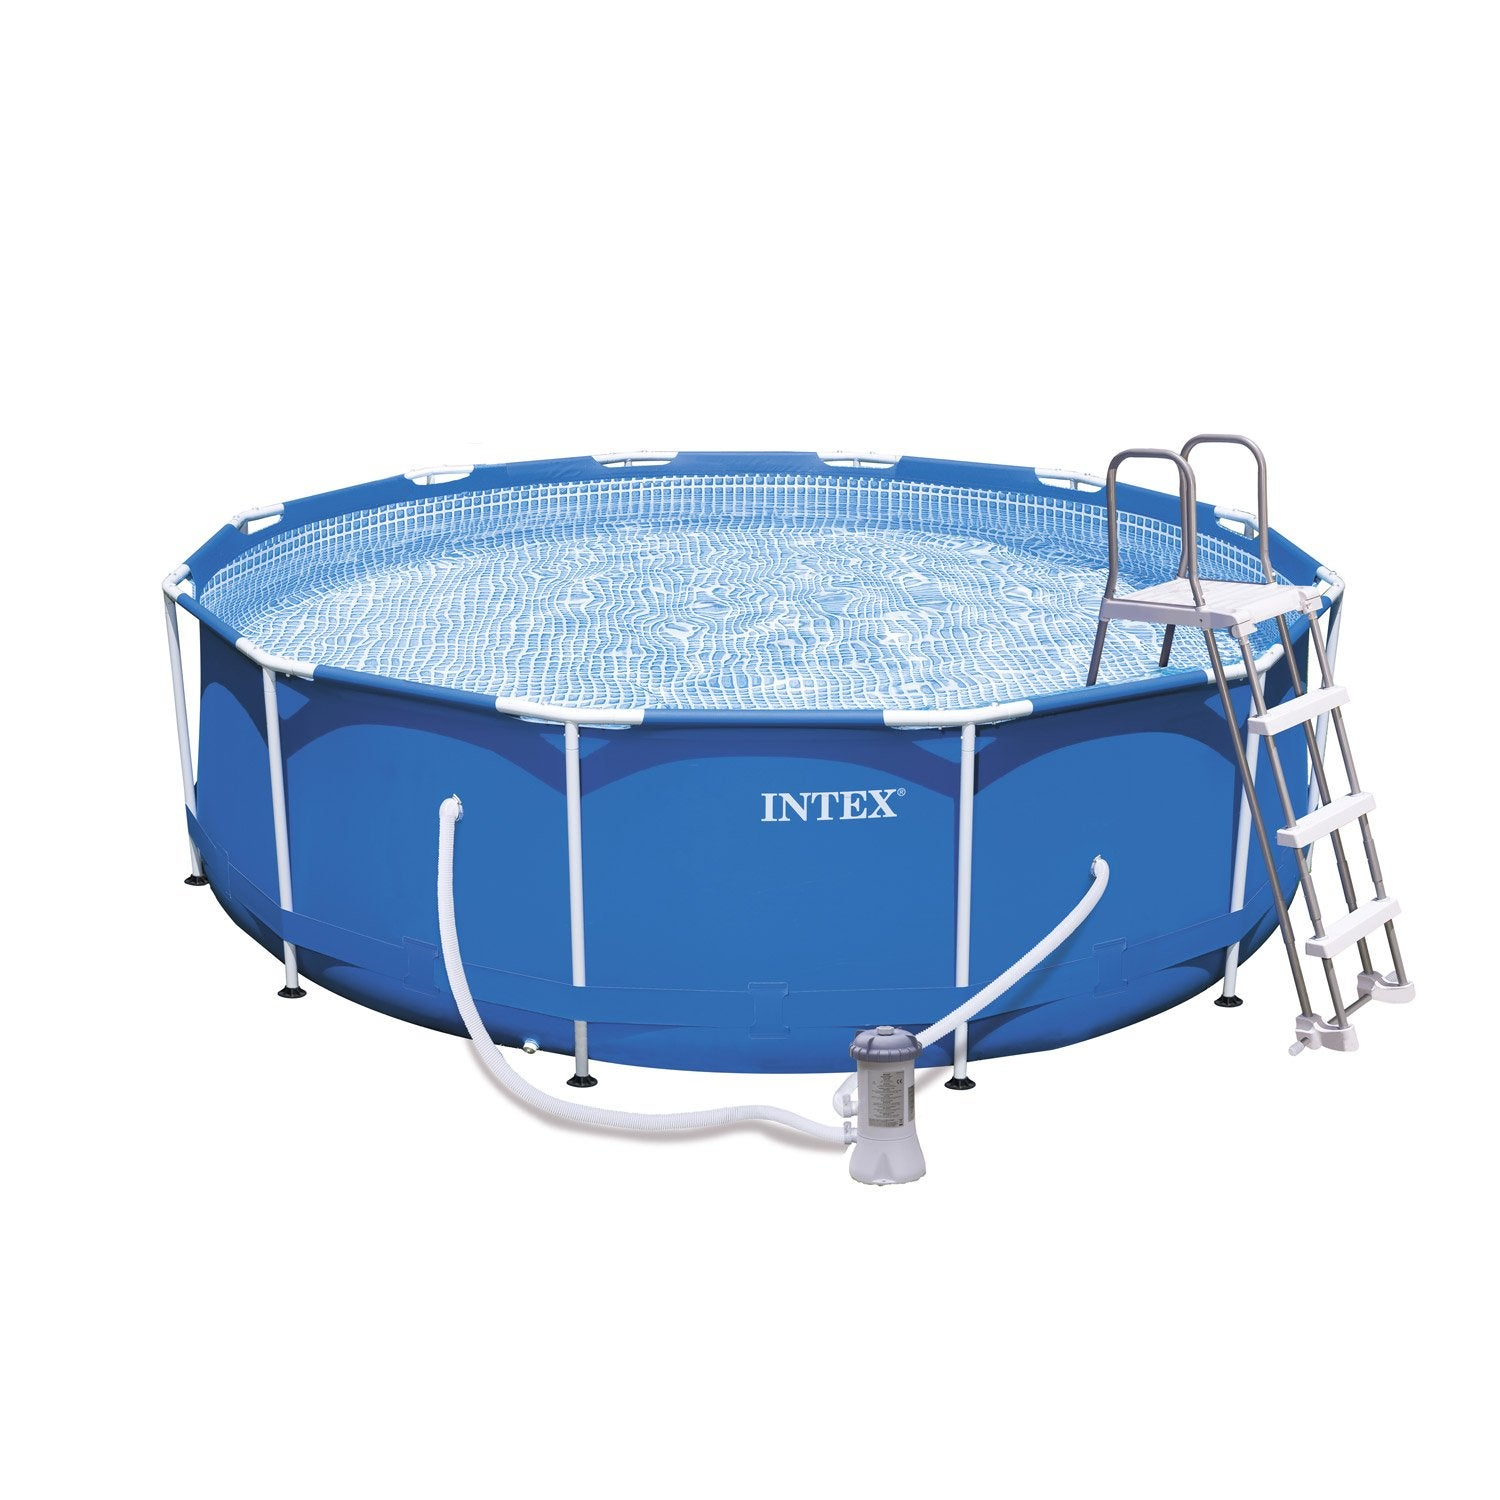 Piscine hors sol autoportante tubulaire m tal frame intex for Piscine 66